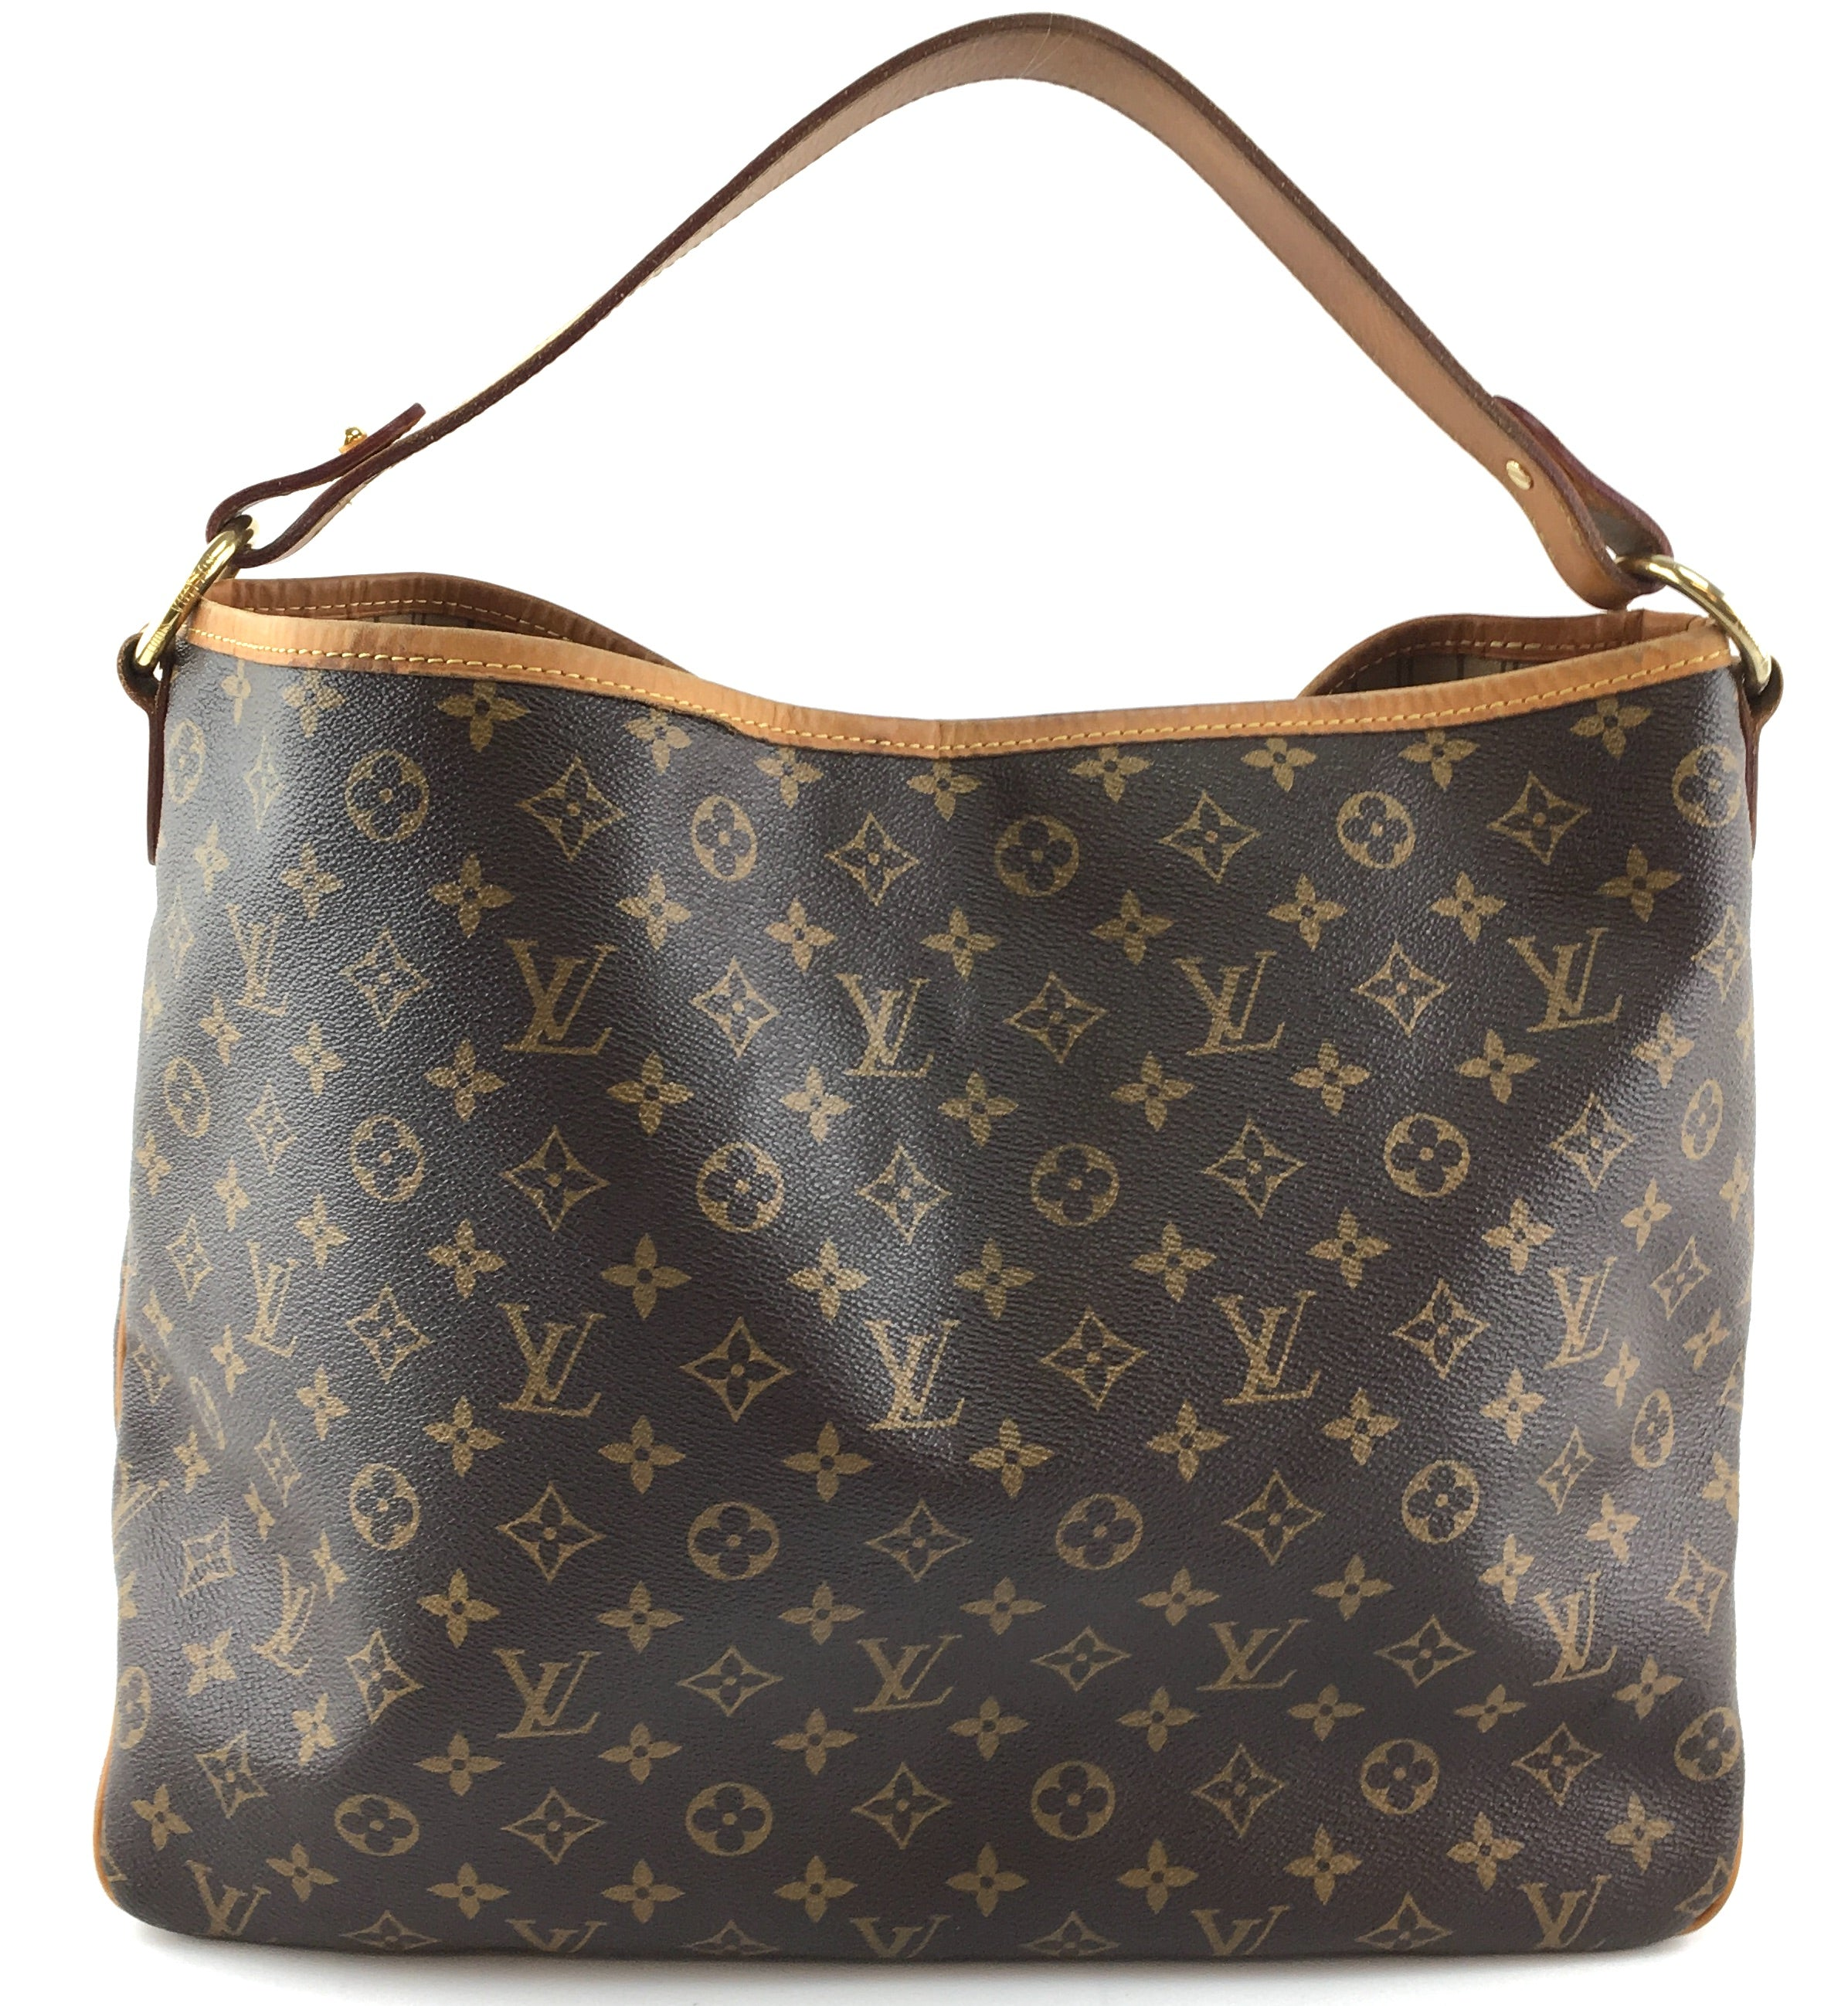 Louis Vuitton Delightful MM Monogram Canvas